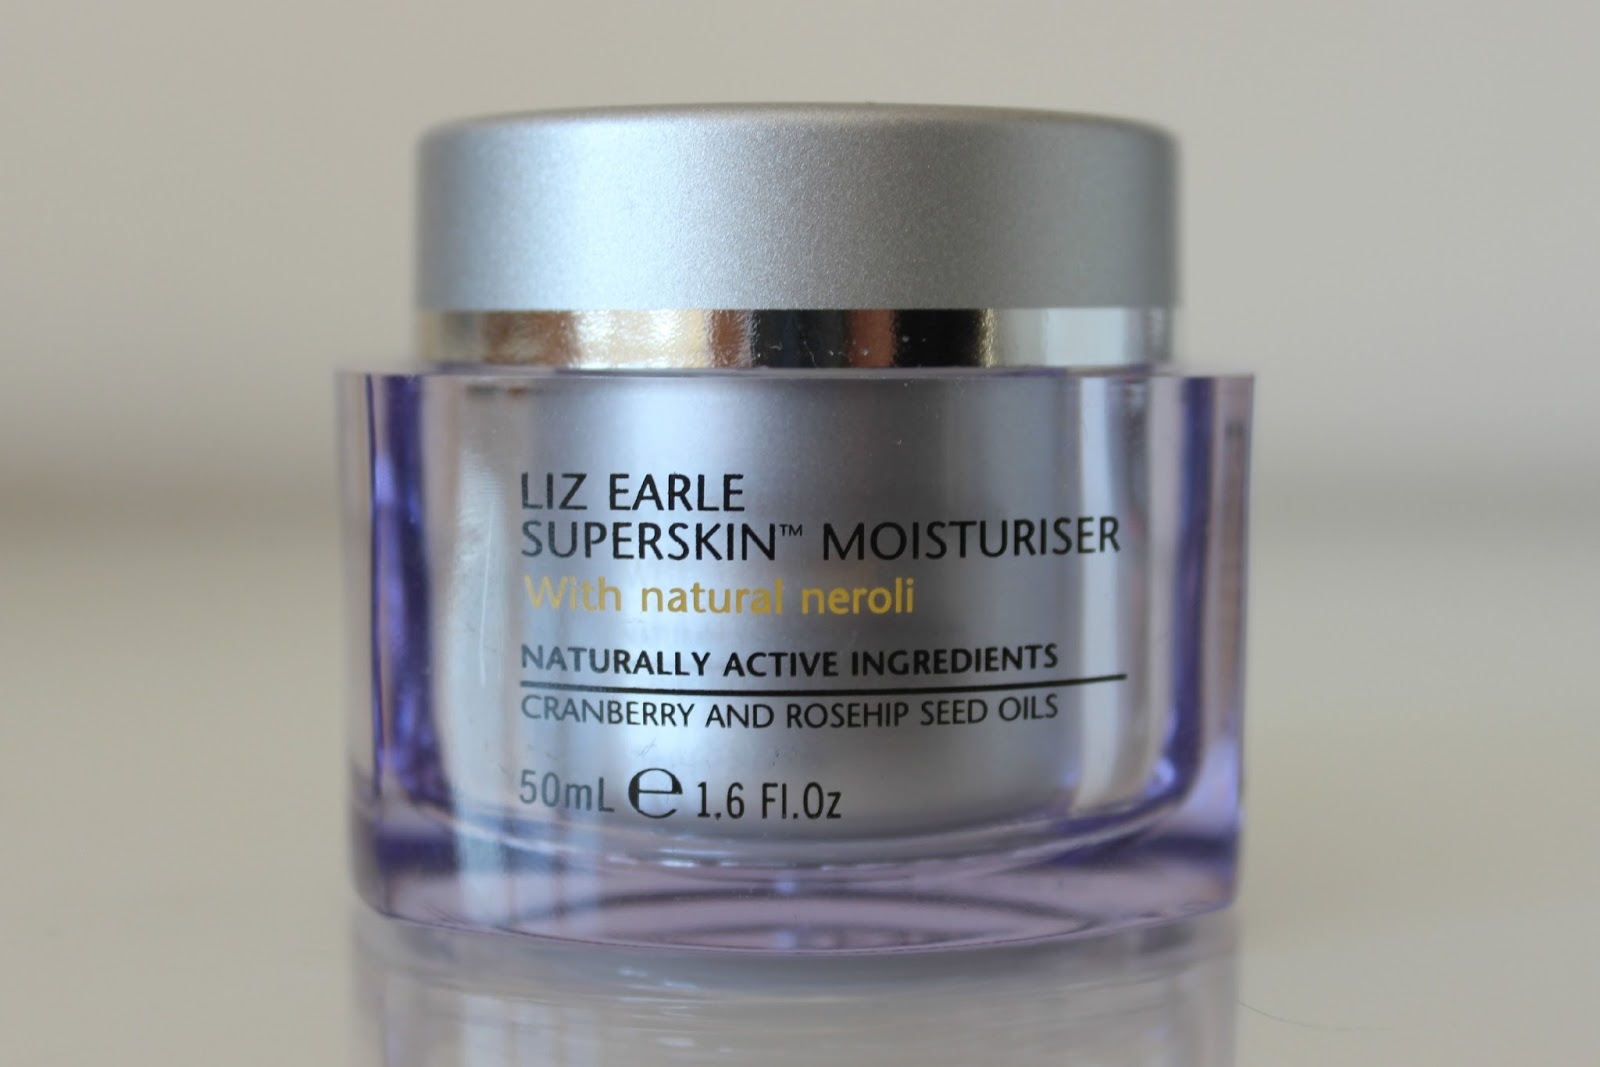 A picture of Liz Earle Superskin Moisturiser with natural Neroli